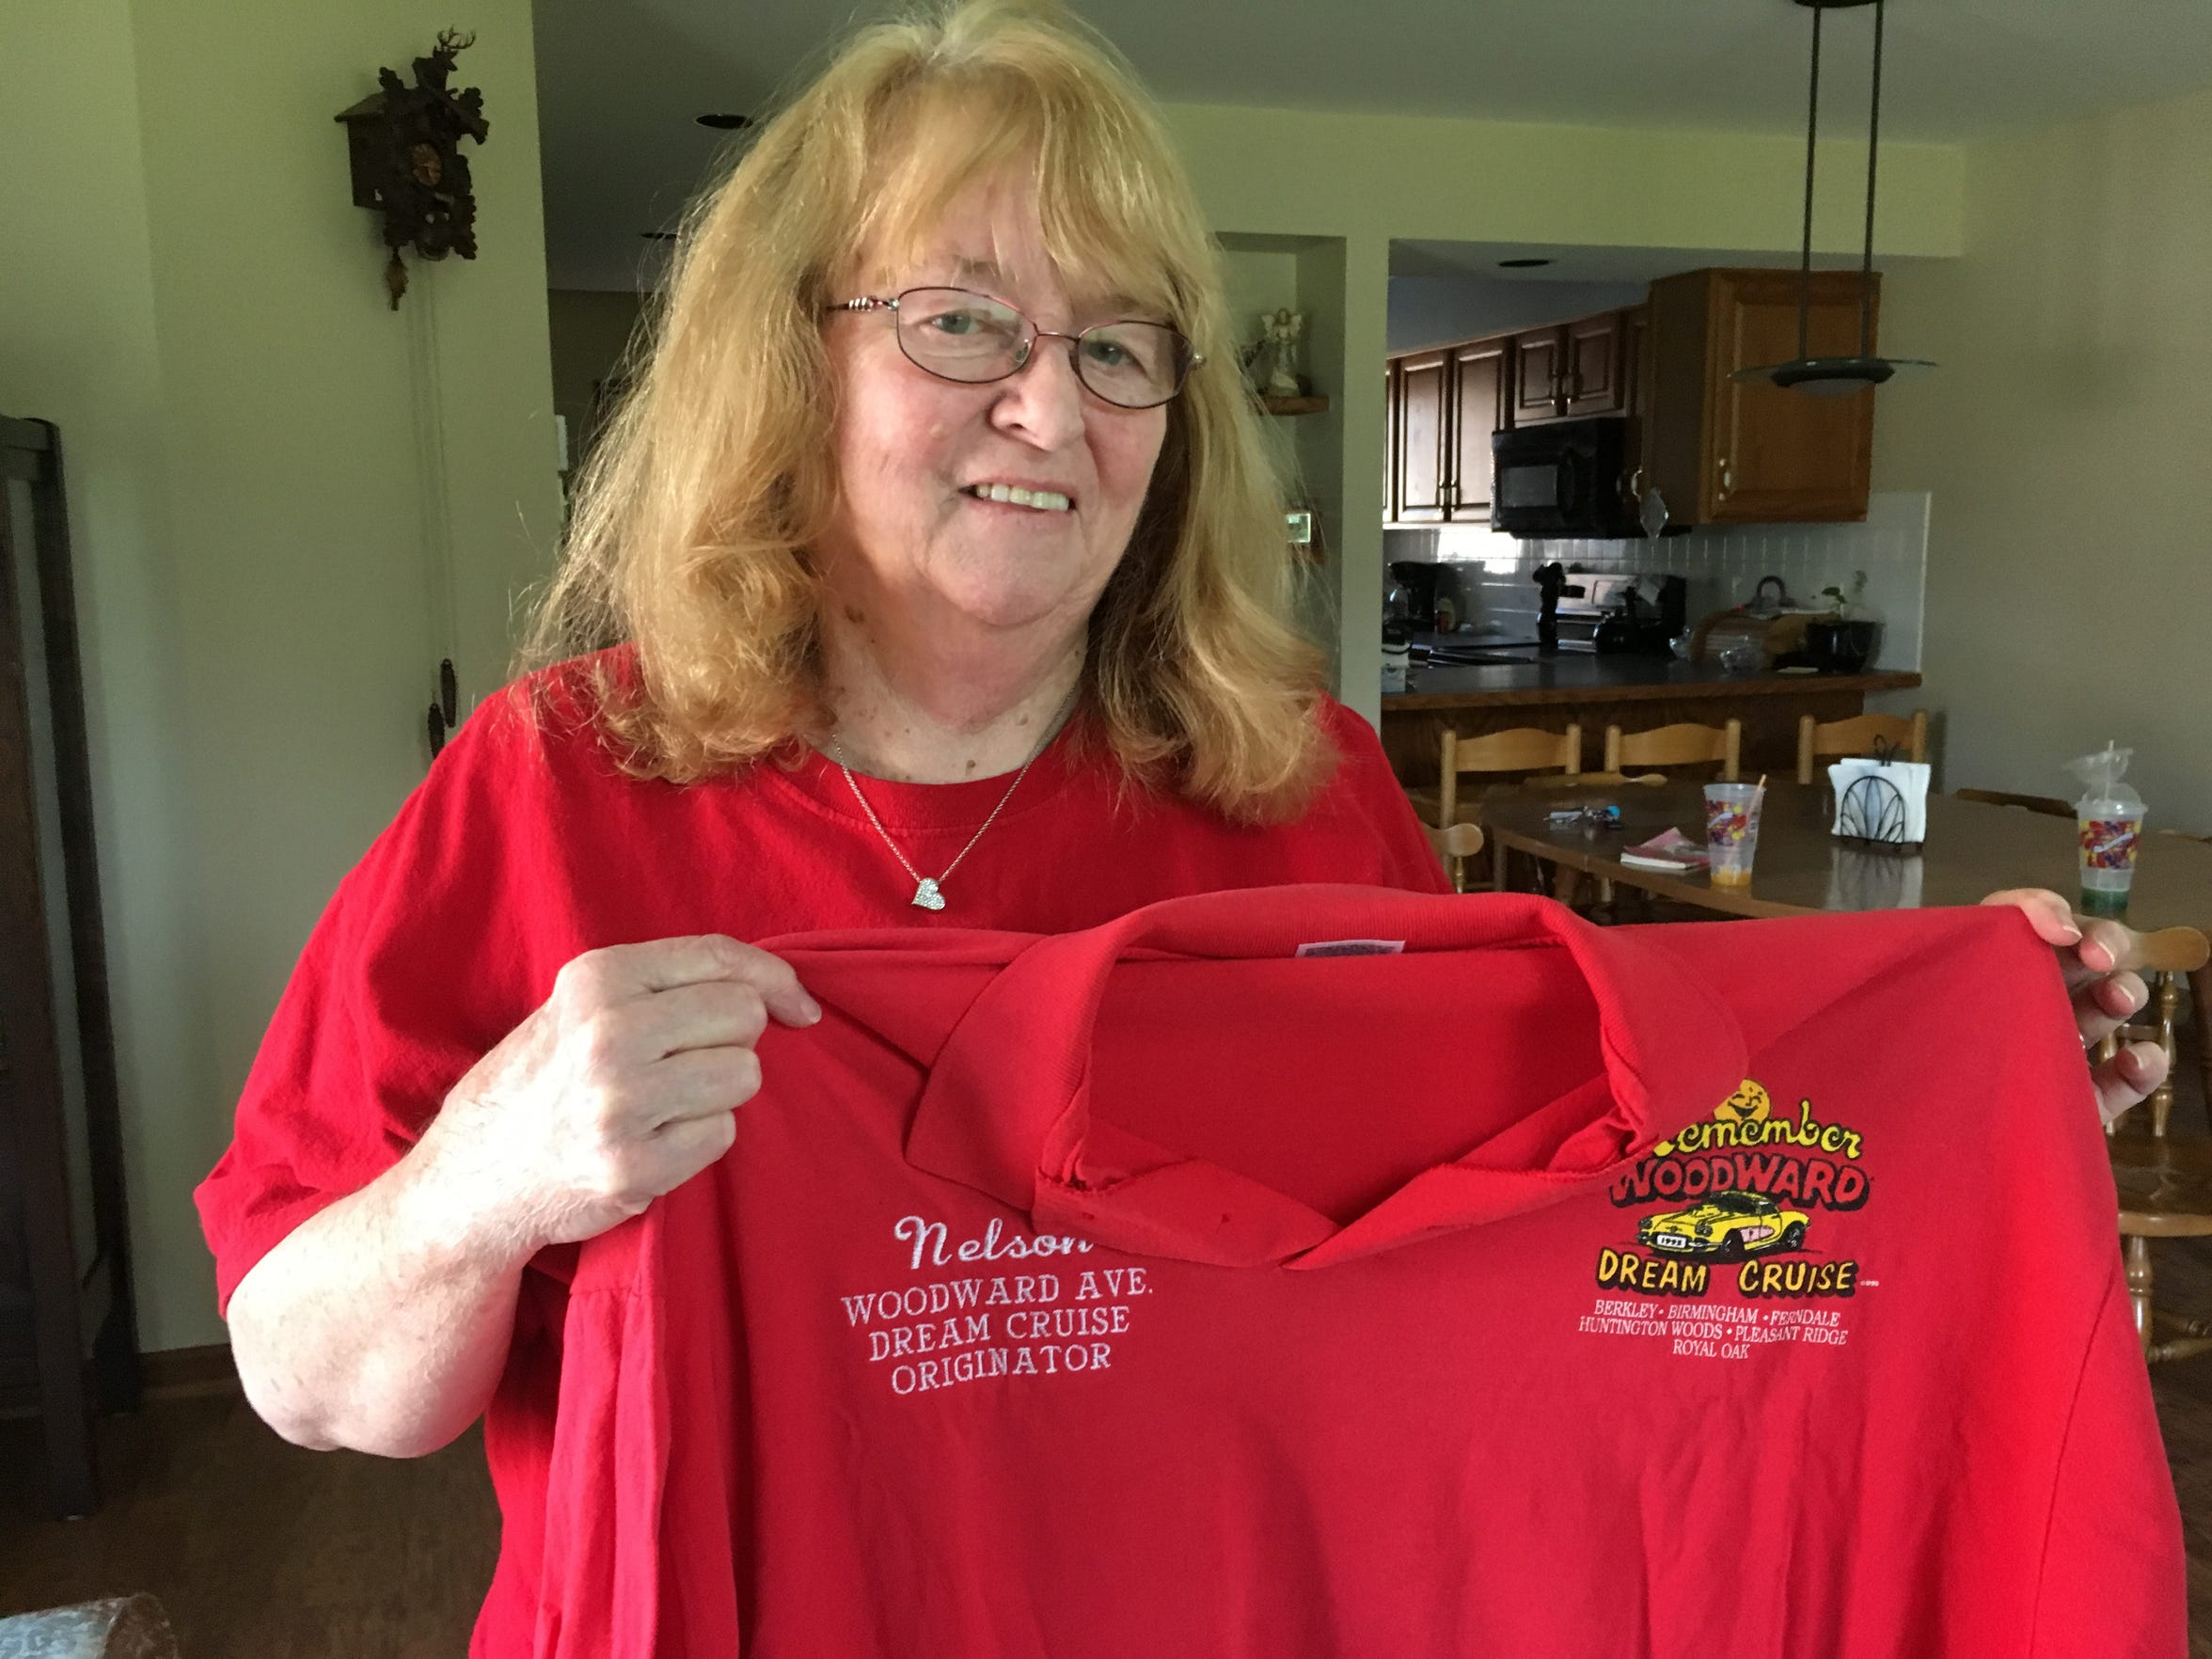 Venetta House of Wayne wants to make sure her late husband, Nelson, receives credit for creating the Woodward Dream Cruise.